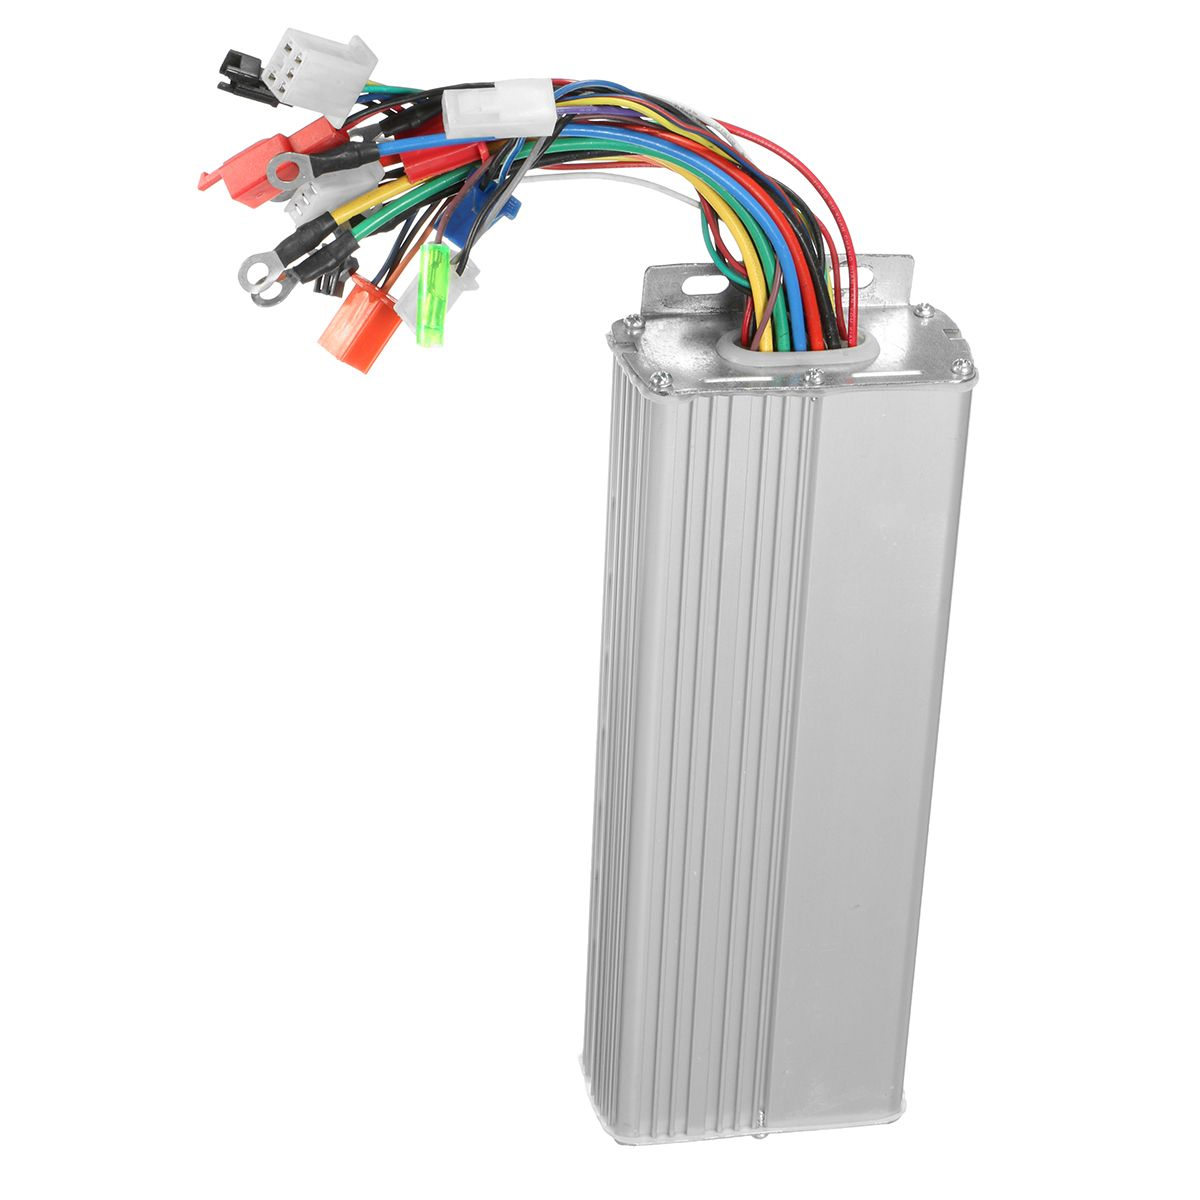 48V 1000W Brushless DC Motor Speed Controller For Electric Bicycle E ...